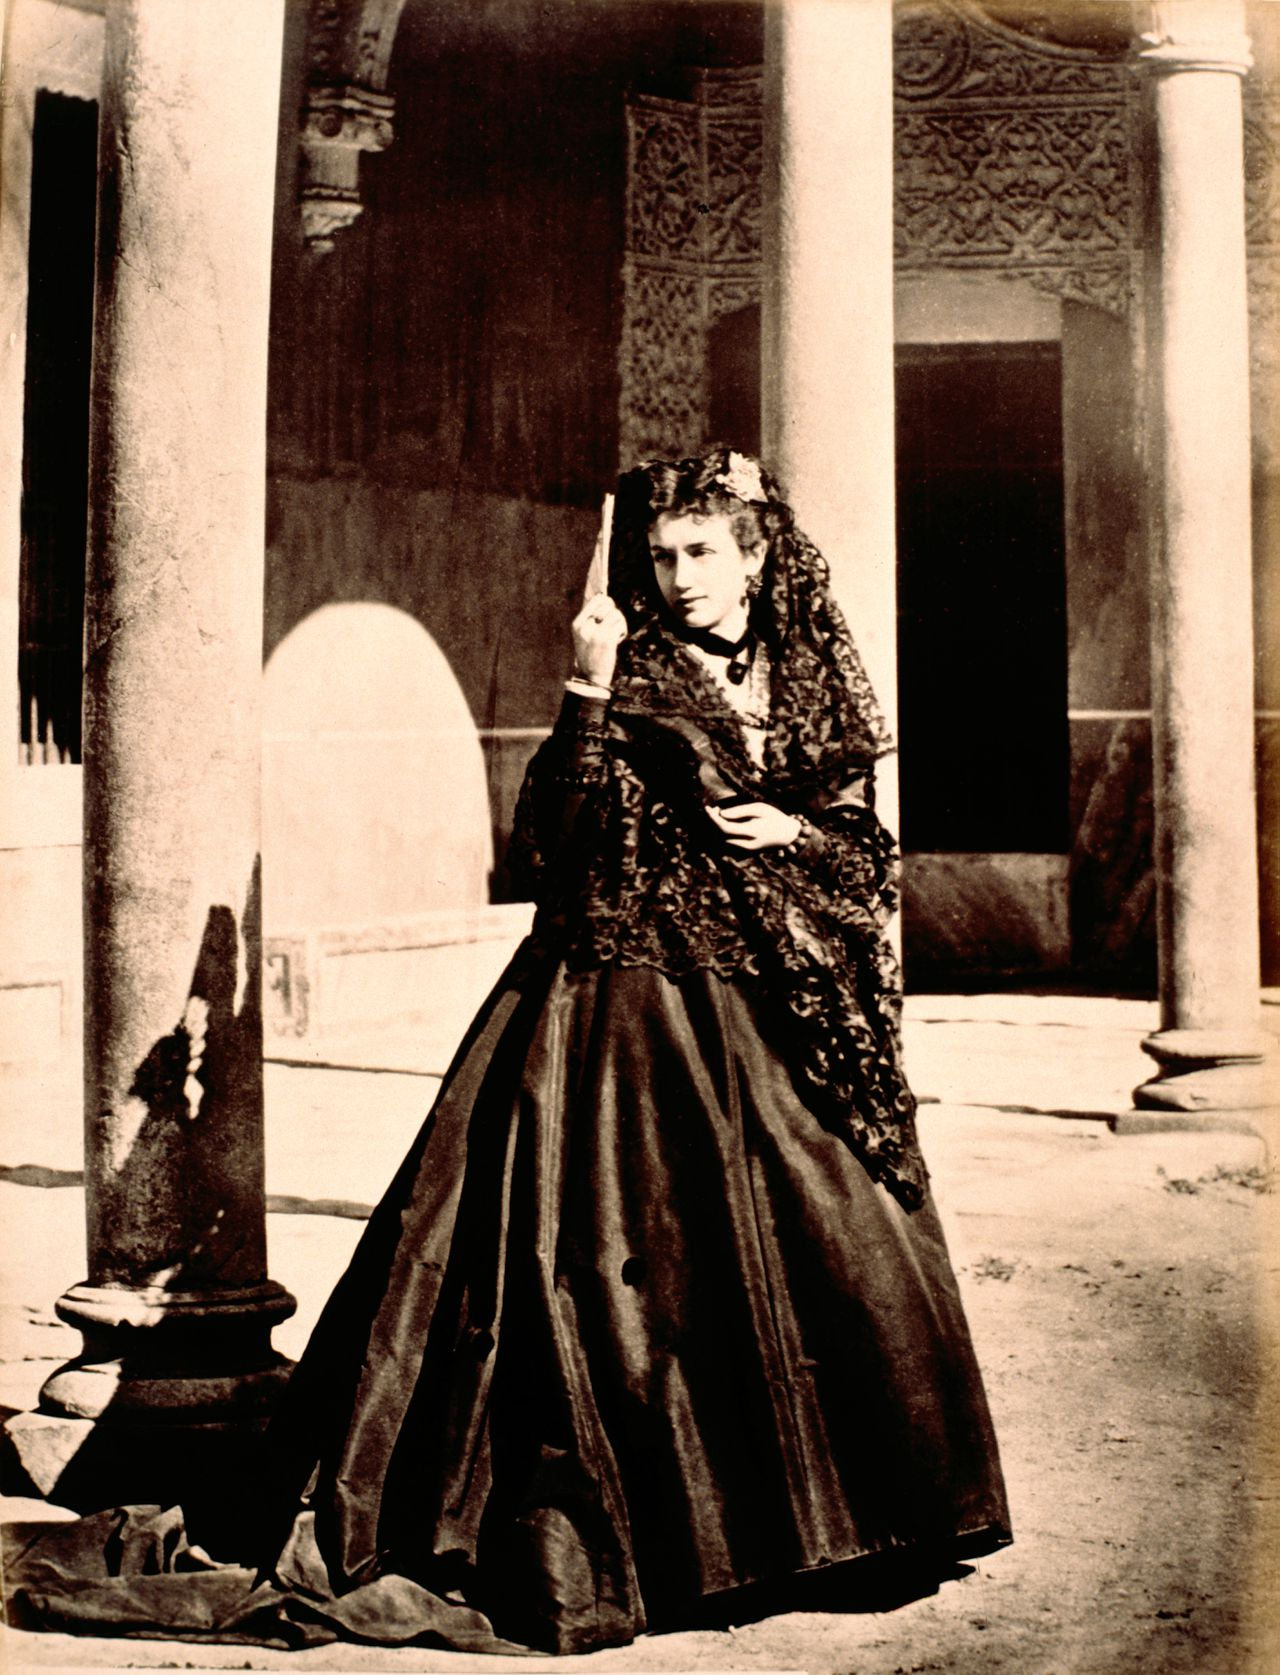 01 Jan 1875, Madrid, Spain --- Woman with a mantilla at Madrid (Spain), ca. 1875. --- Image by © adoc-photos/Corbis